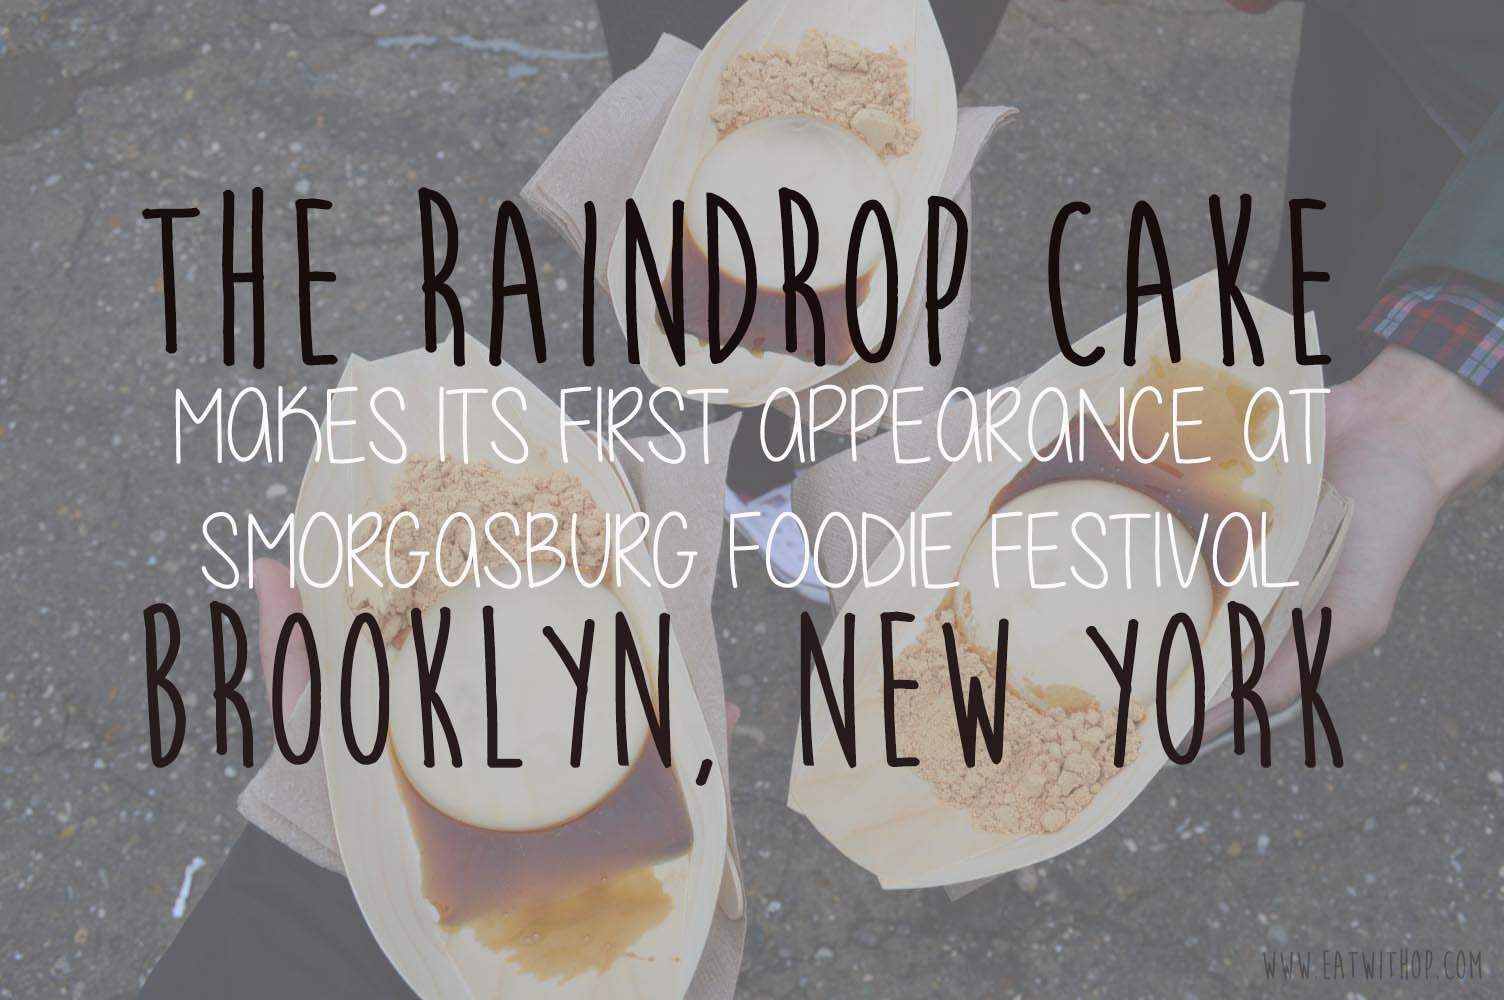 RAIN...DROP IT LIKE IT'S HOT? THE RAINDROP CAKE DEBUTS IN BROOKLYN, NEW YORK!